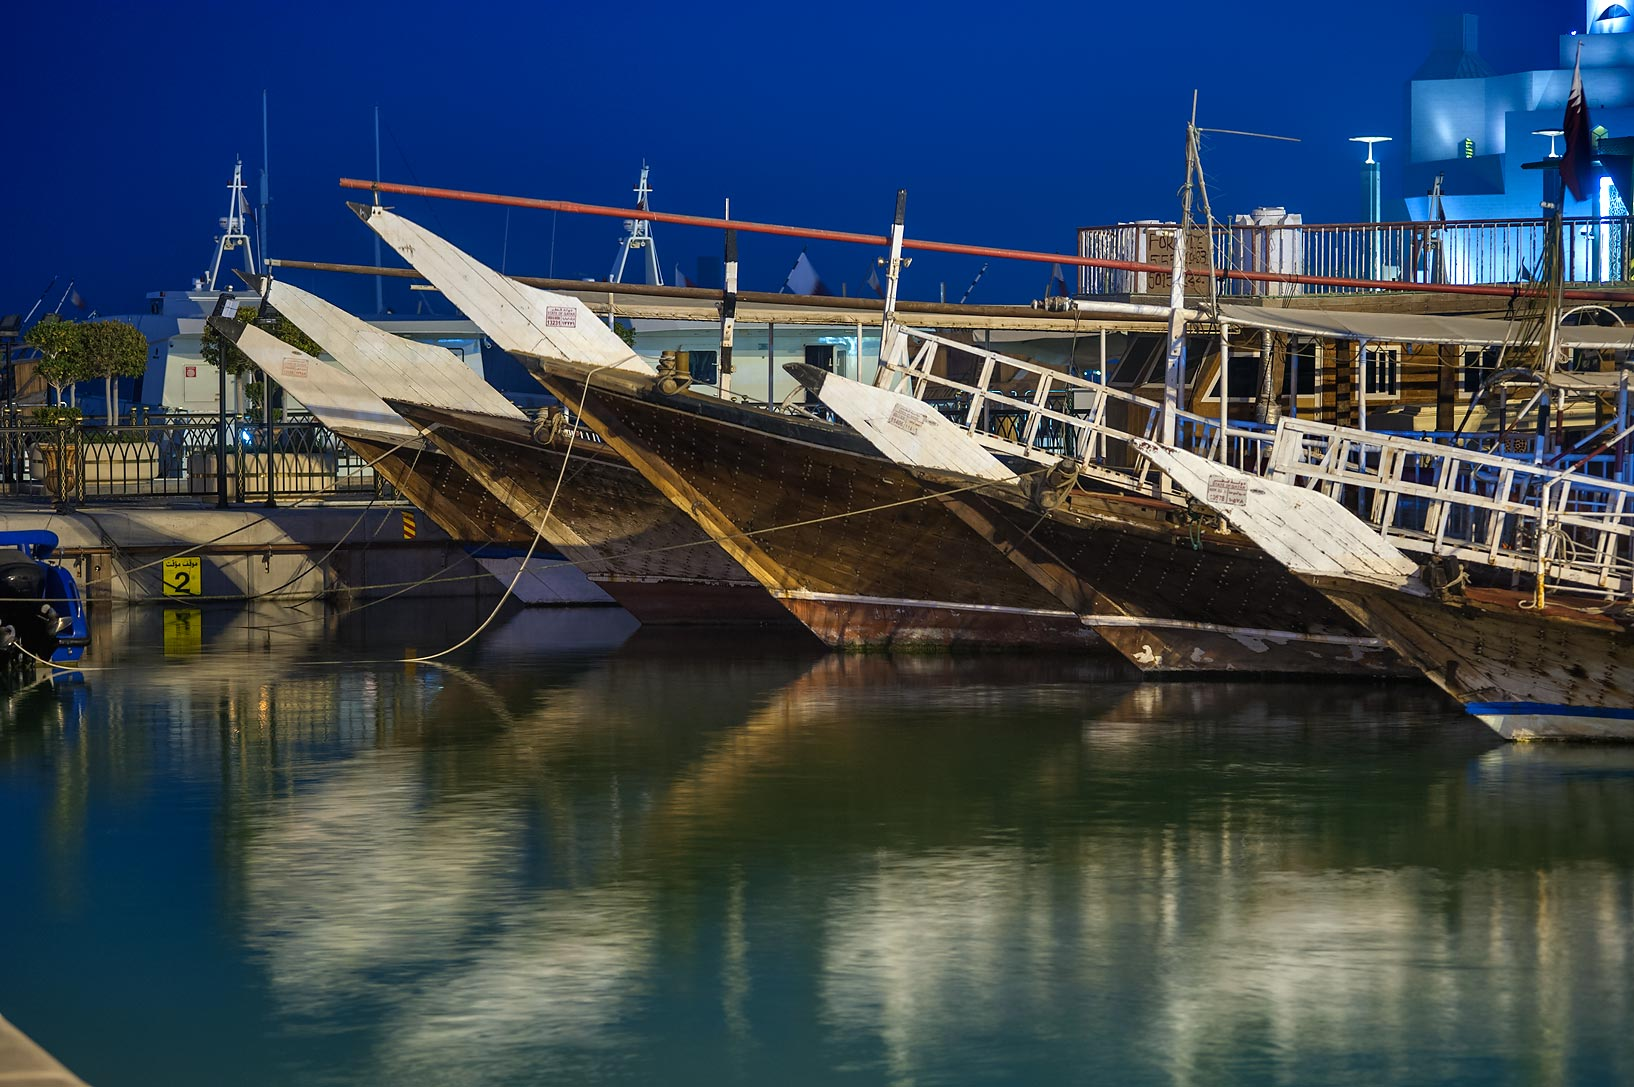 Prows of dhow boats at a marina, view from Corniche promenade. Doha, Qatar